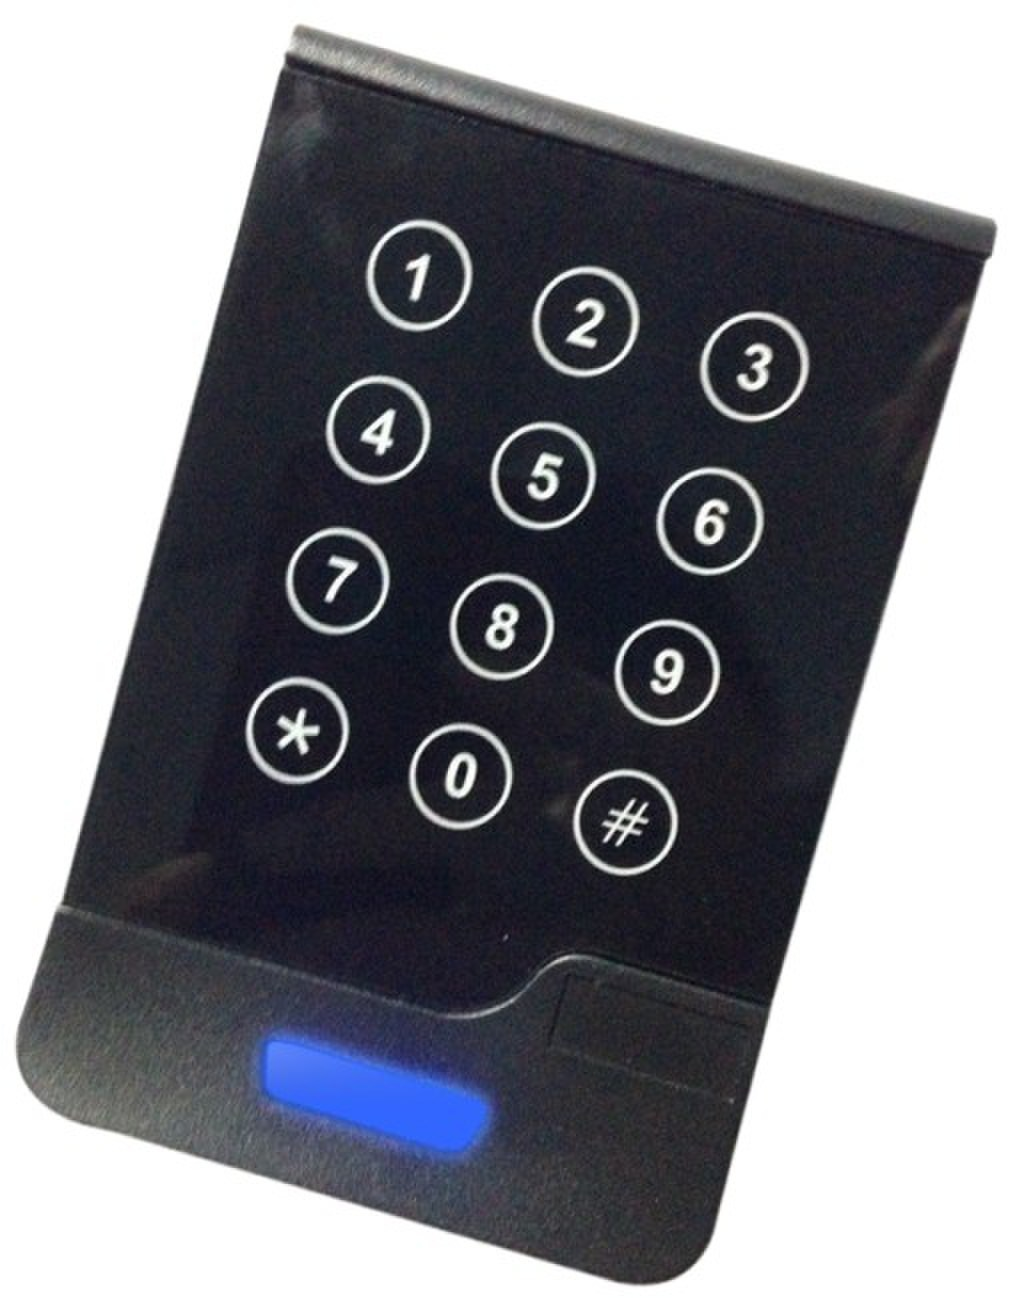 Keypad Digital Access Control RFID Reader Smart Card Reader for Security System pictures & photos